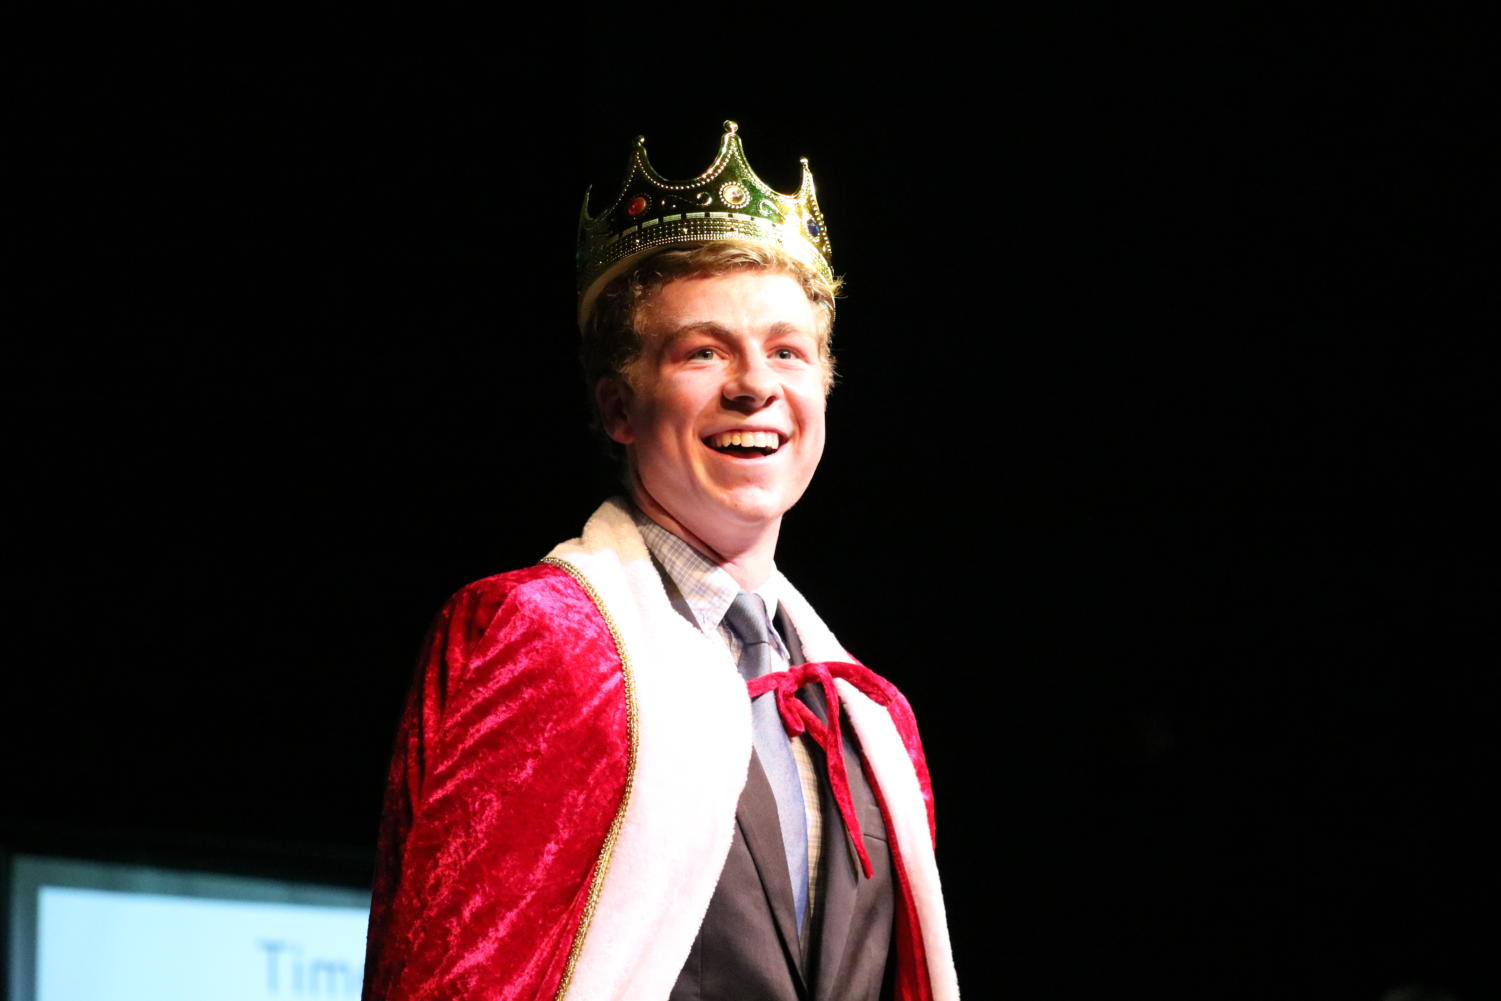 """Senior Lance Griffith grins at the packed auditorium after being crowned 'Mr. Longhorn.' For the 'talent' portion of the show, Griffith partnered with senior Chris Bass and reenacted the iconic lift scene from Dirty Dancing. """"It was extremely exciting and rewarding to see my hard work preparing for the event pay off, I wanted my performance to be really good and I'm happy people liked it,"""" Griffith said. """"Chris and I spent a lot of time working on the dance and had an amazing time performing it. All the moves went right and the crowd got really into it, it was quite a unique experience."""""""